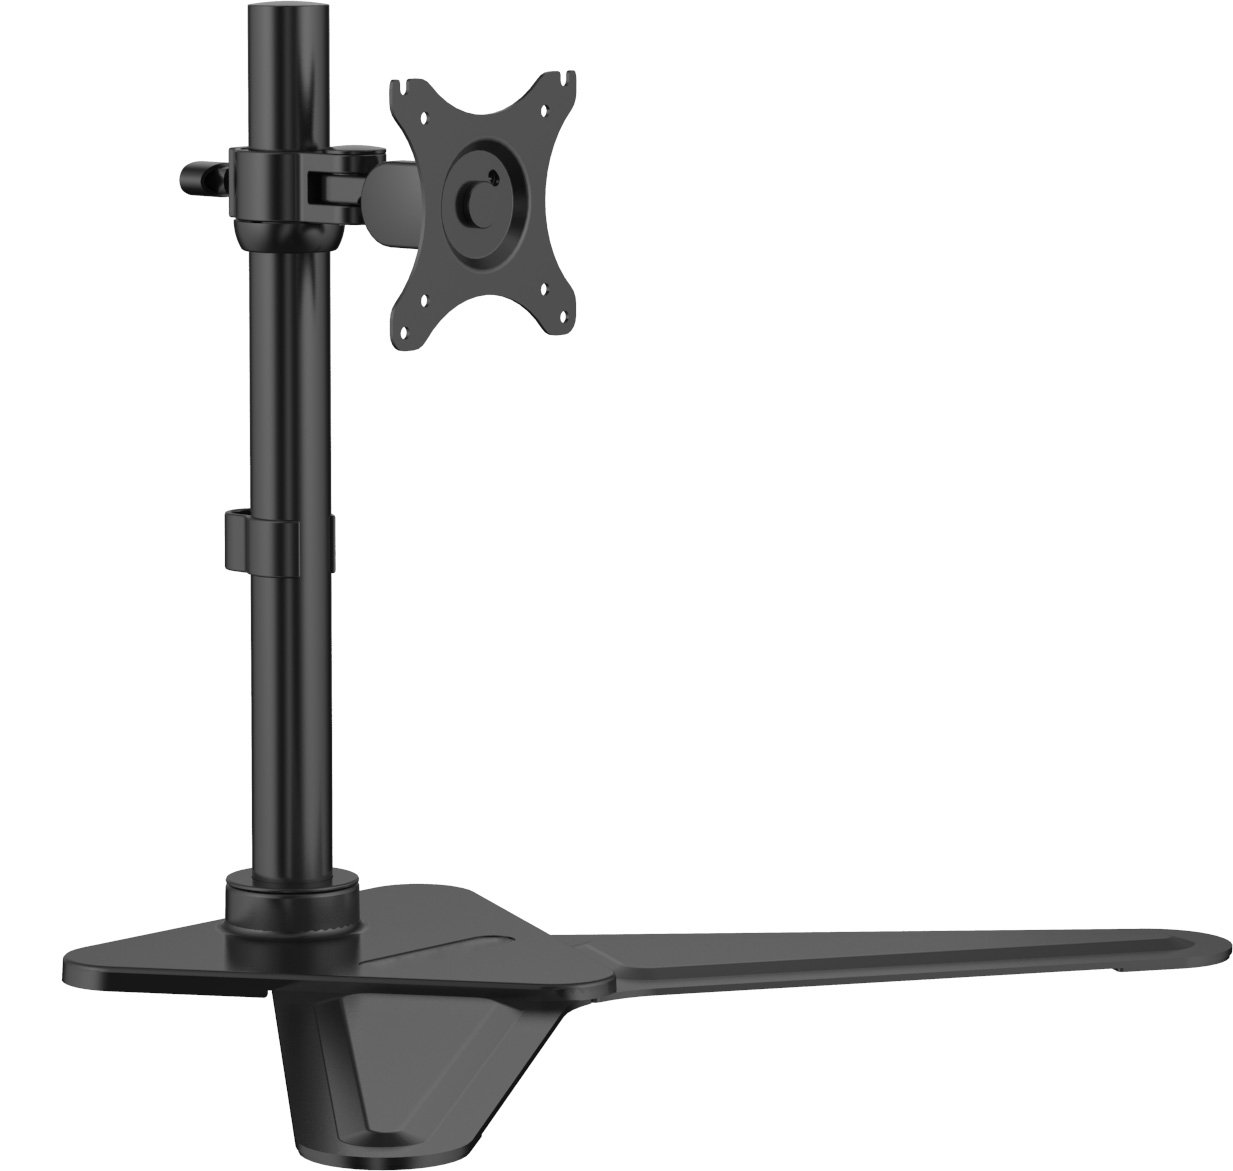 Xtrempro Free Standing Single Monitor Mount LCD LED Desk for 10'' - 30'' Computer Screen, Height Adjustable, Tilt -85° ~ +15°, ±180° Rotation, VESA 75 x 75, 100 x 100, 44Lbs Capacity – Black (41106)